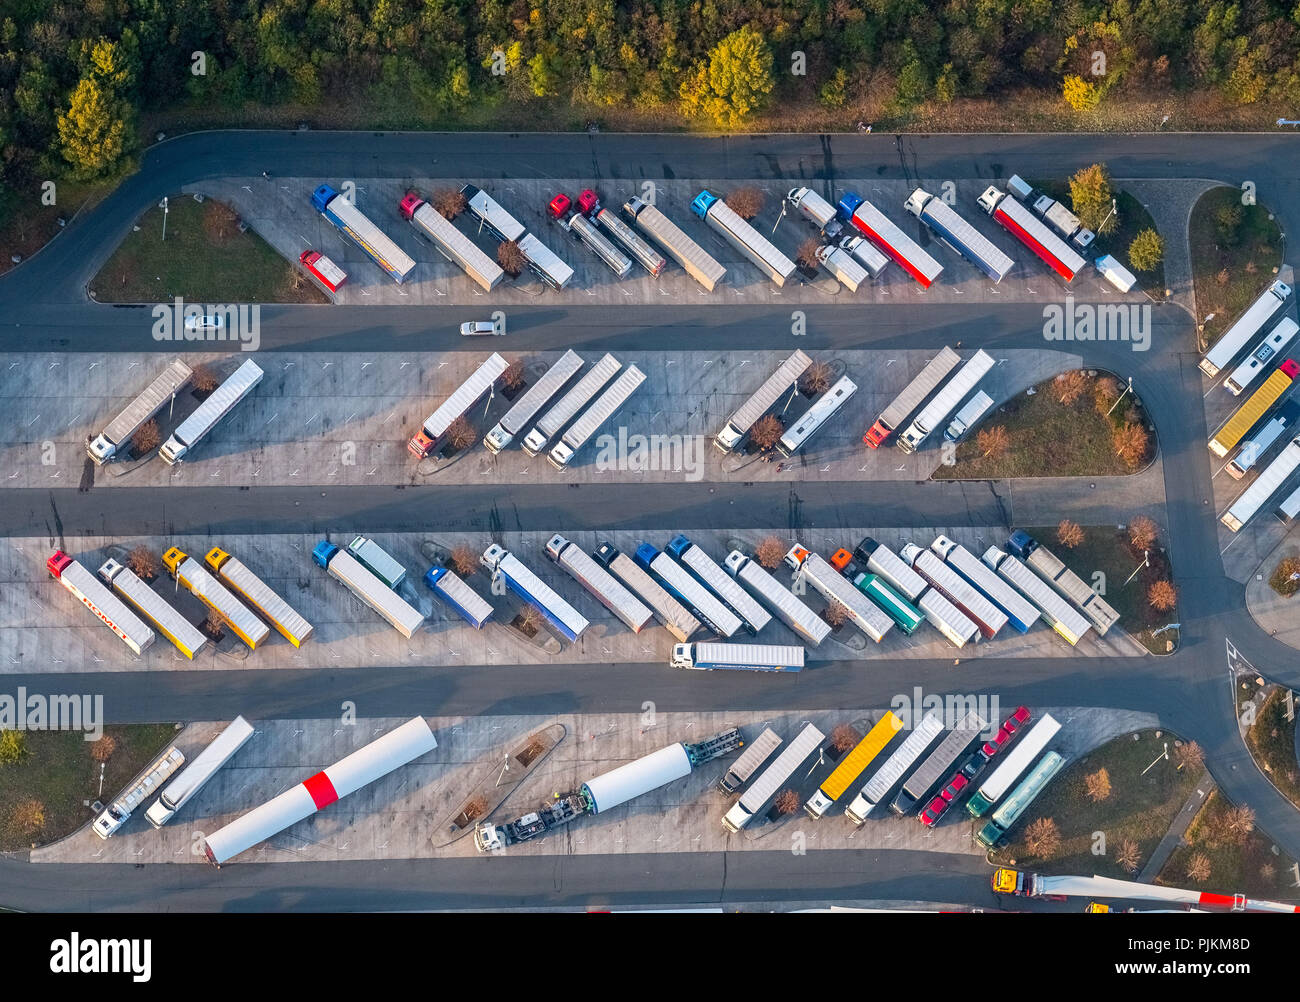 Rest area Hamm-Rhynern, narrow parking lots, trucks, driving times, breaks, Hamm, Ruhr area, North Rhine-Westphalia, Germany - Stock Image